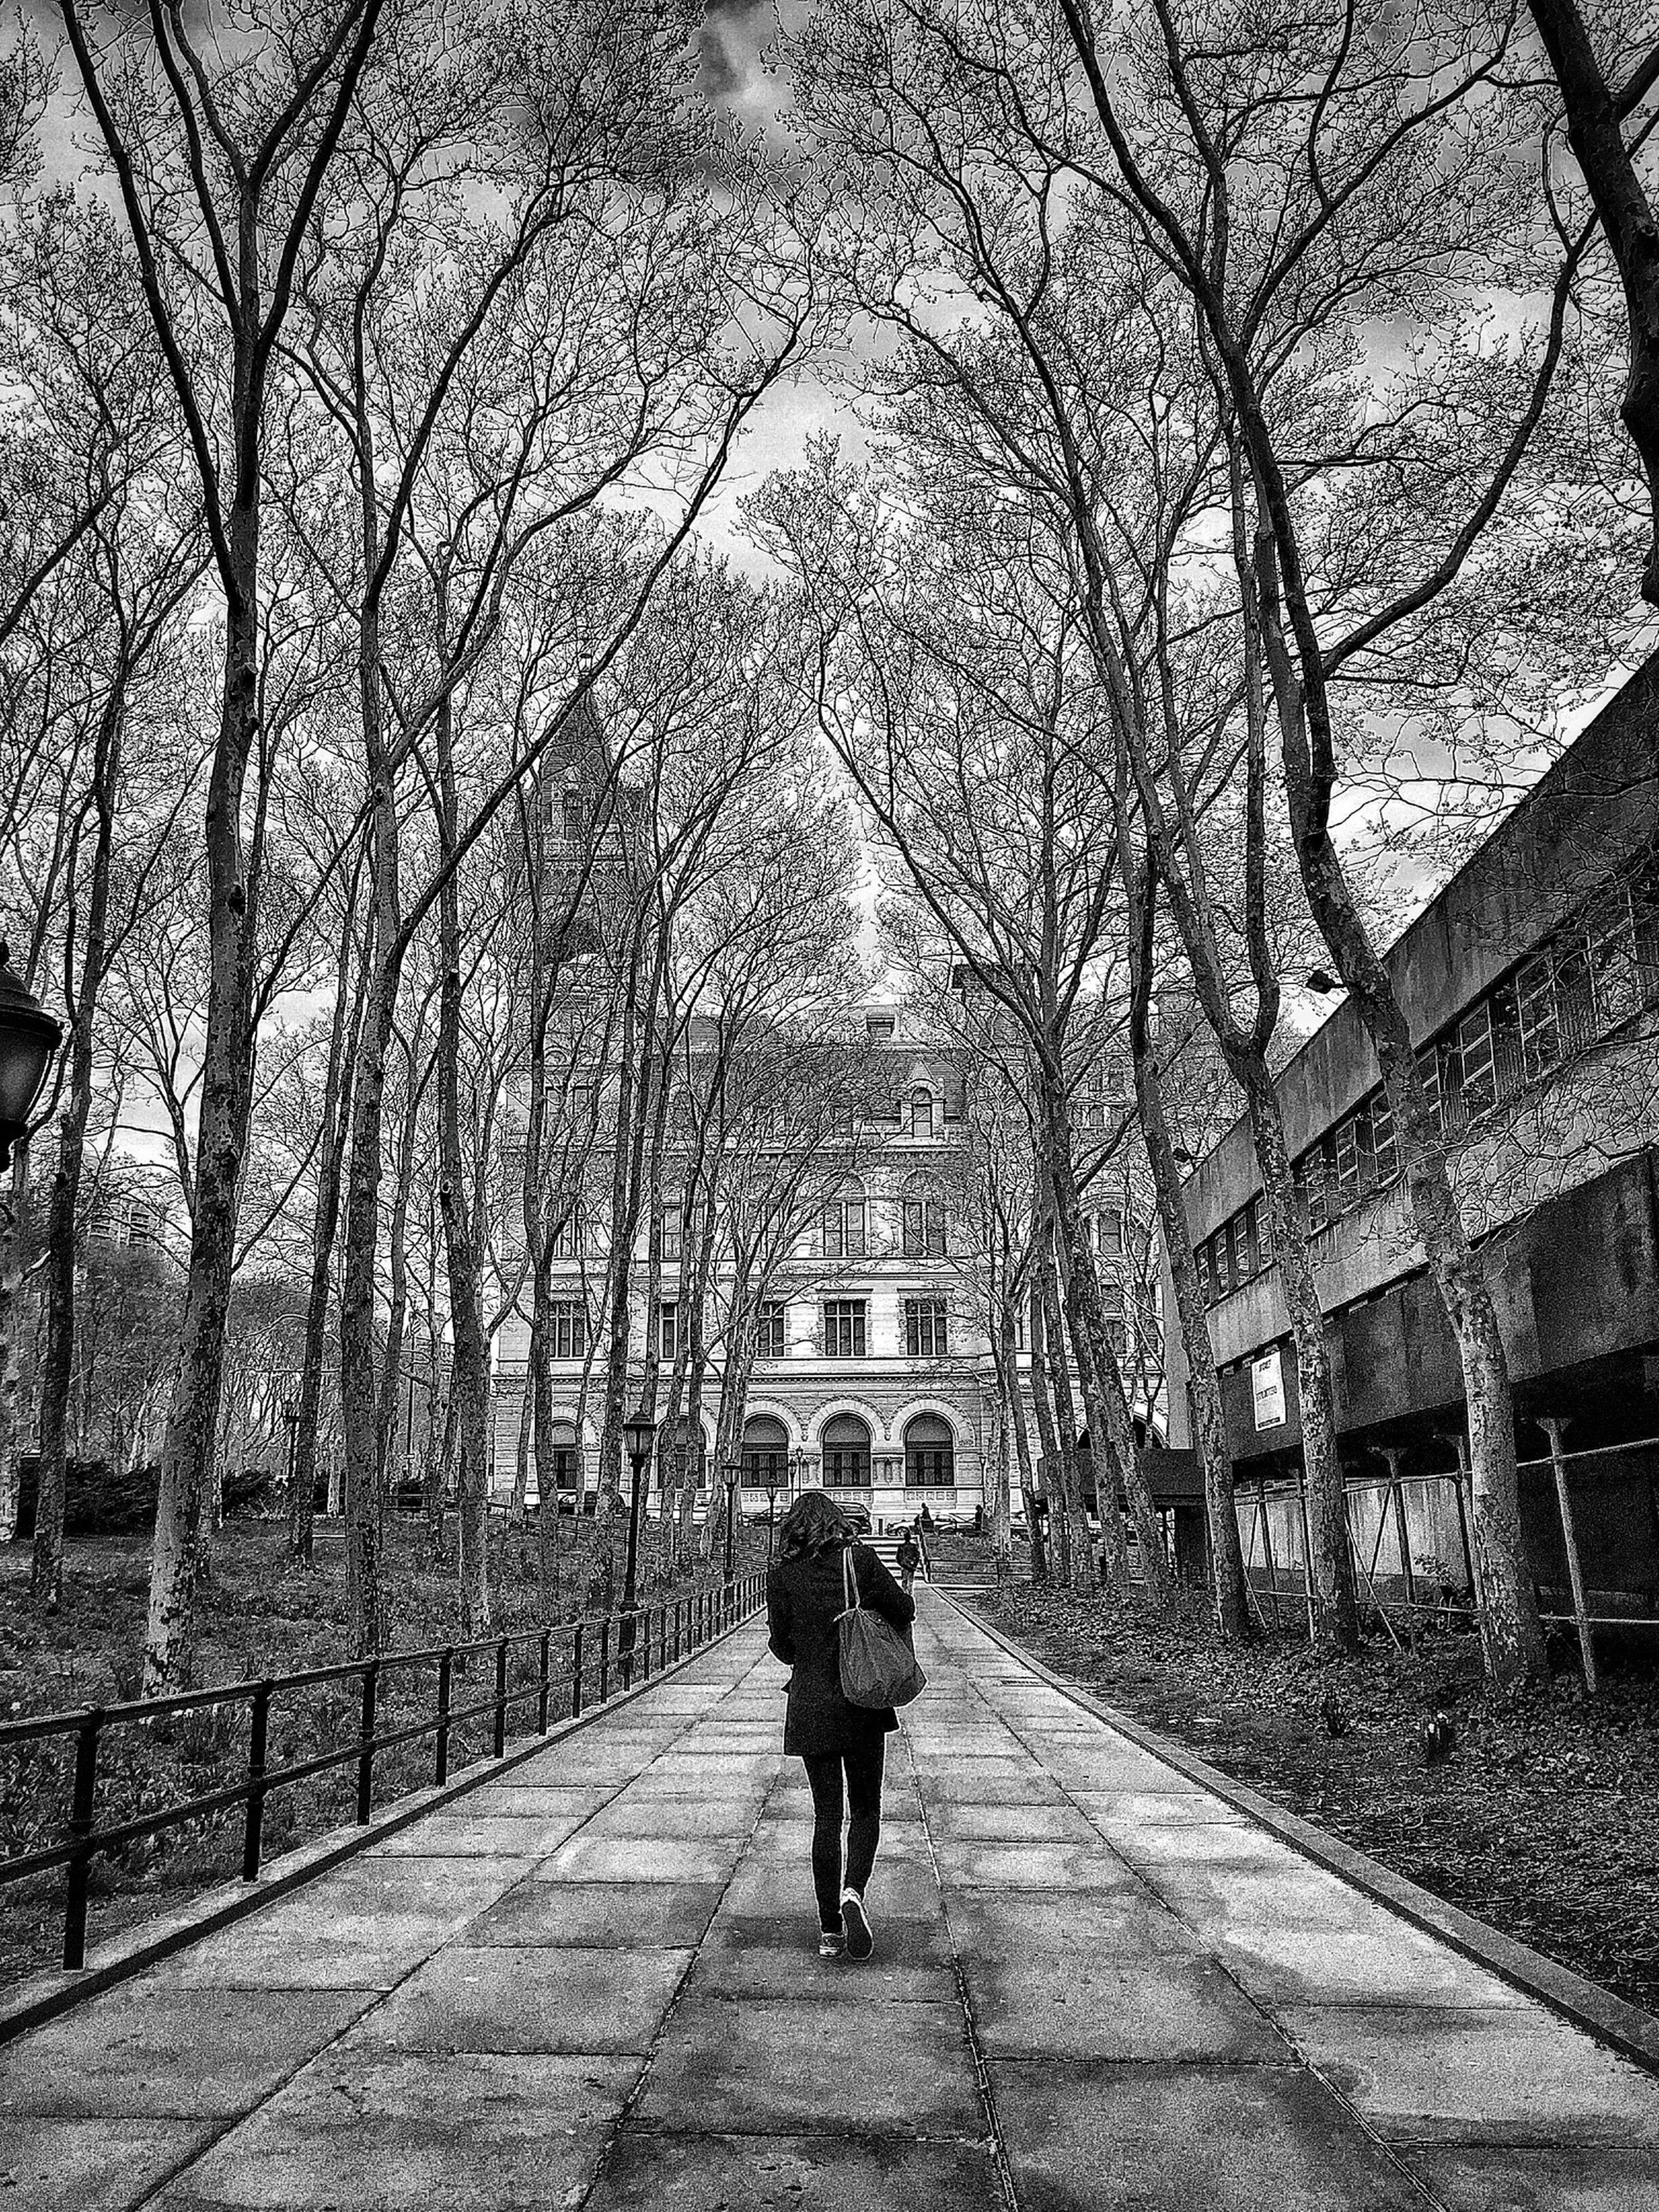 full length, tree, rear view, walking, the way forward, lifestyles, men, bare tree, transportation, built structure, architecture, person, leisure activity, building exterior, street, diminishing perspective, vanishing point